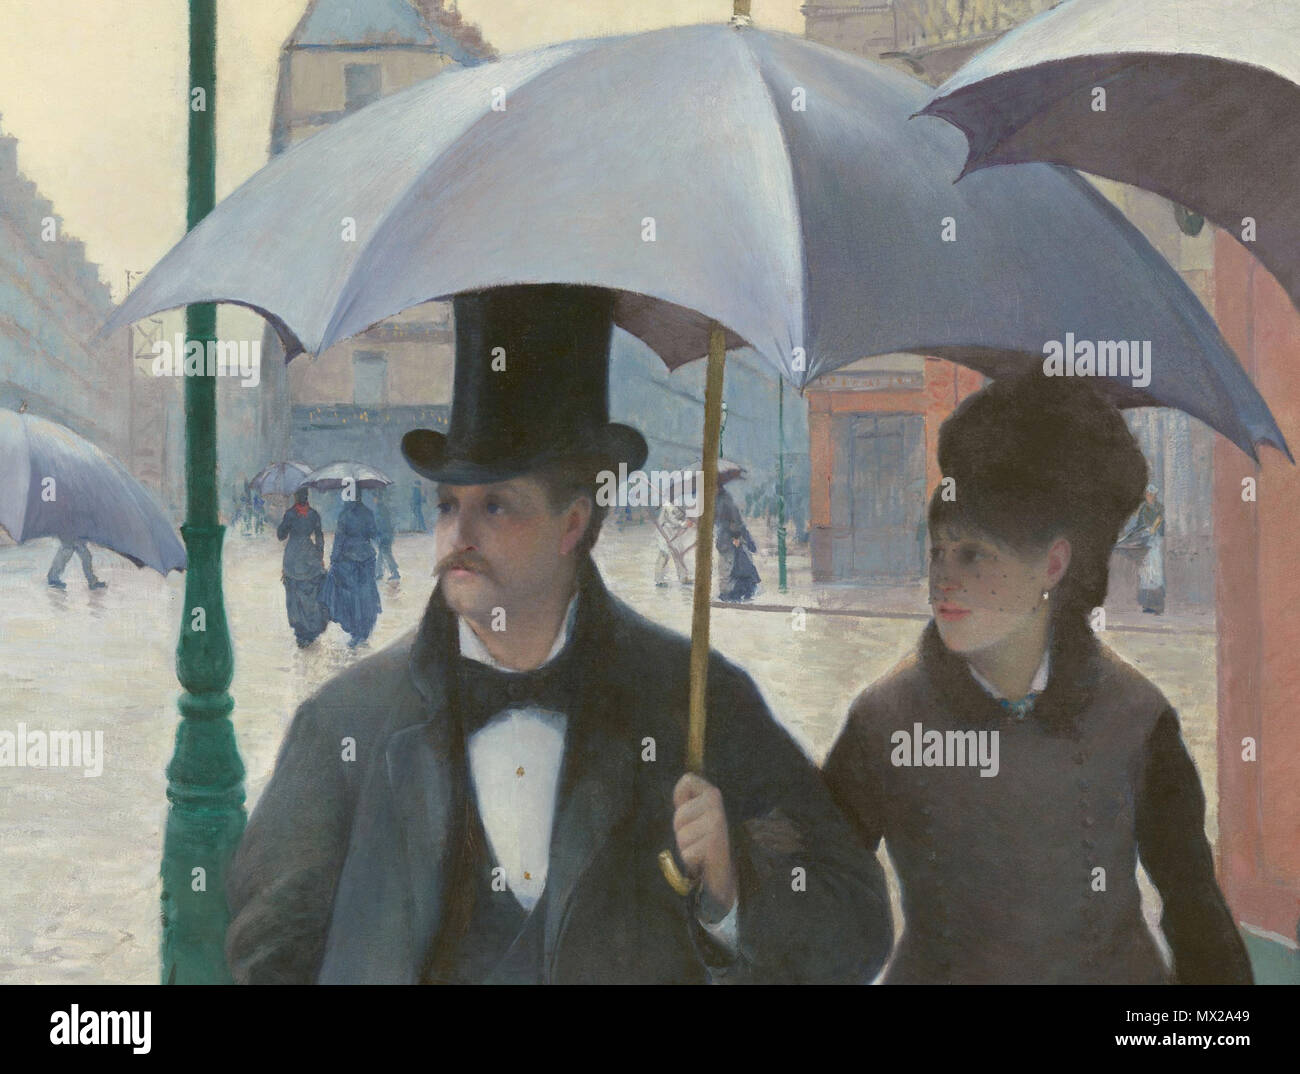 .  English: Cropped version of Gustave Caillebotte - Paris Street; Rainy Day - Google Art Project . 17 February 2014, 15:09:39.    Gustave Caillebotte (1848–1894)   Alternative names Gustav Caillebotte; Caillebotte  Description French painter, art collector, patron, philatelist, marine architect and sailor  Date of birth/death 19 August 1848 21 February 1894  Location of birth/death Paris Gennevilliers  Work period between 1863 and 1893  Work location Paris, Petit-Gennevilliers, Yerres, Honfleur (1880–1889), Trouville-sur-Mer (1880–1893)  Authority control  : Q295144 VIAF:71399604 ISNI:00 - Stock Image